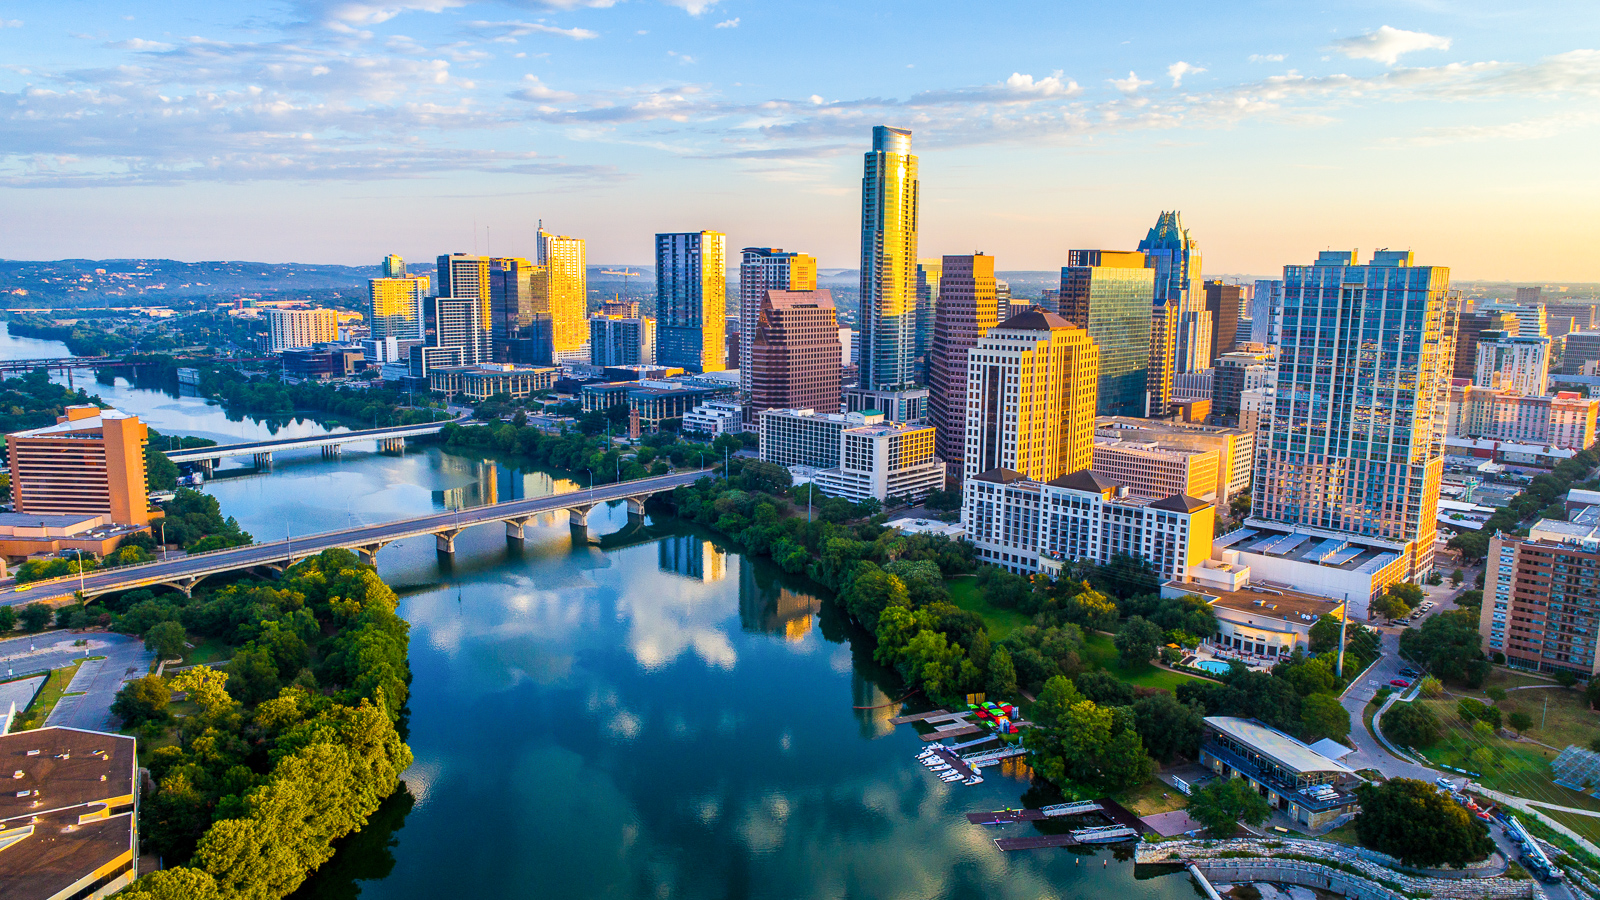 15 Things to Do in Austin: A Guide to The Texas Capital